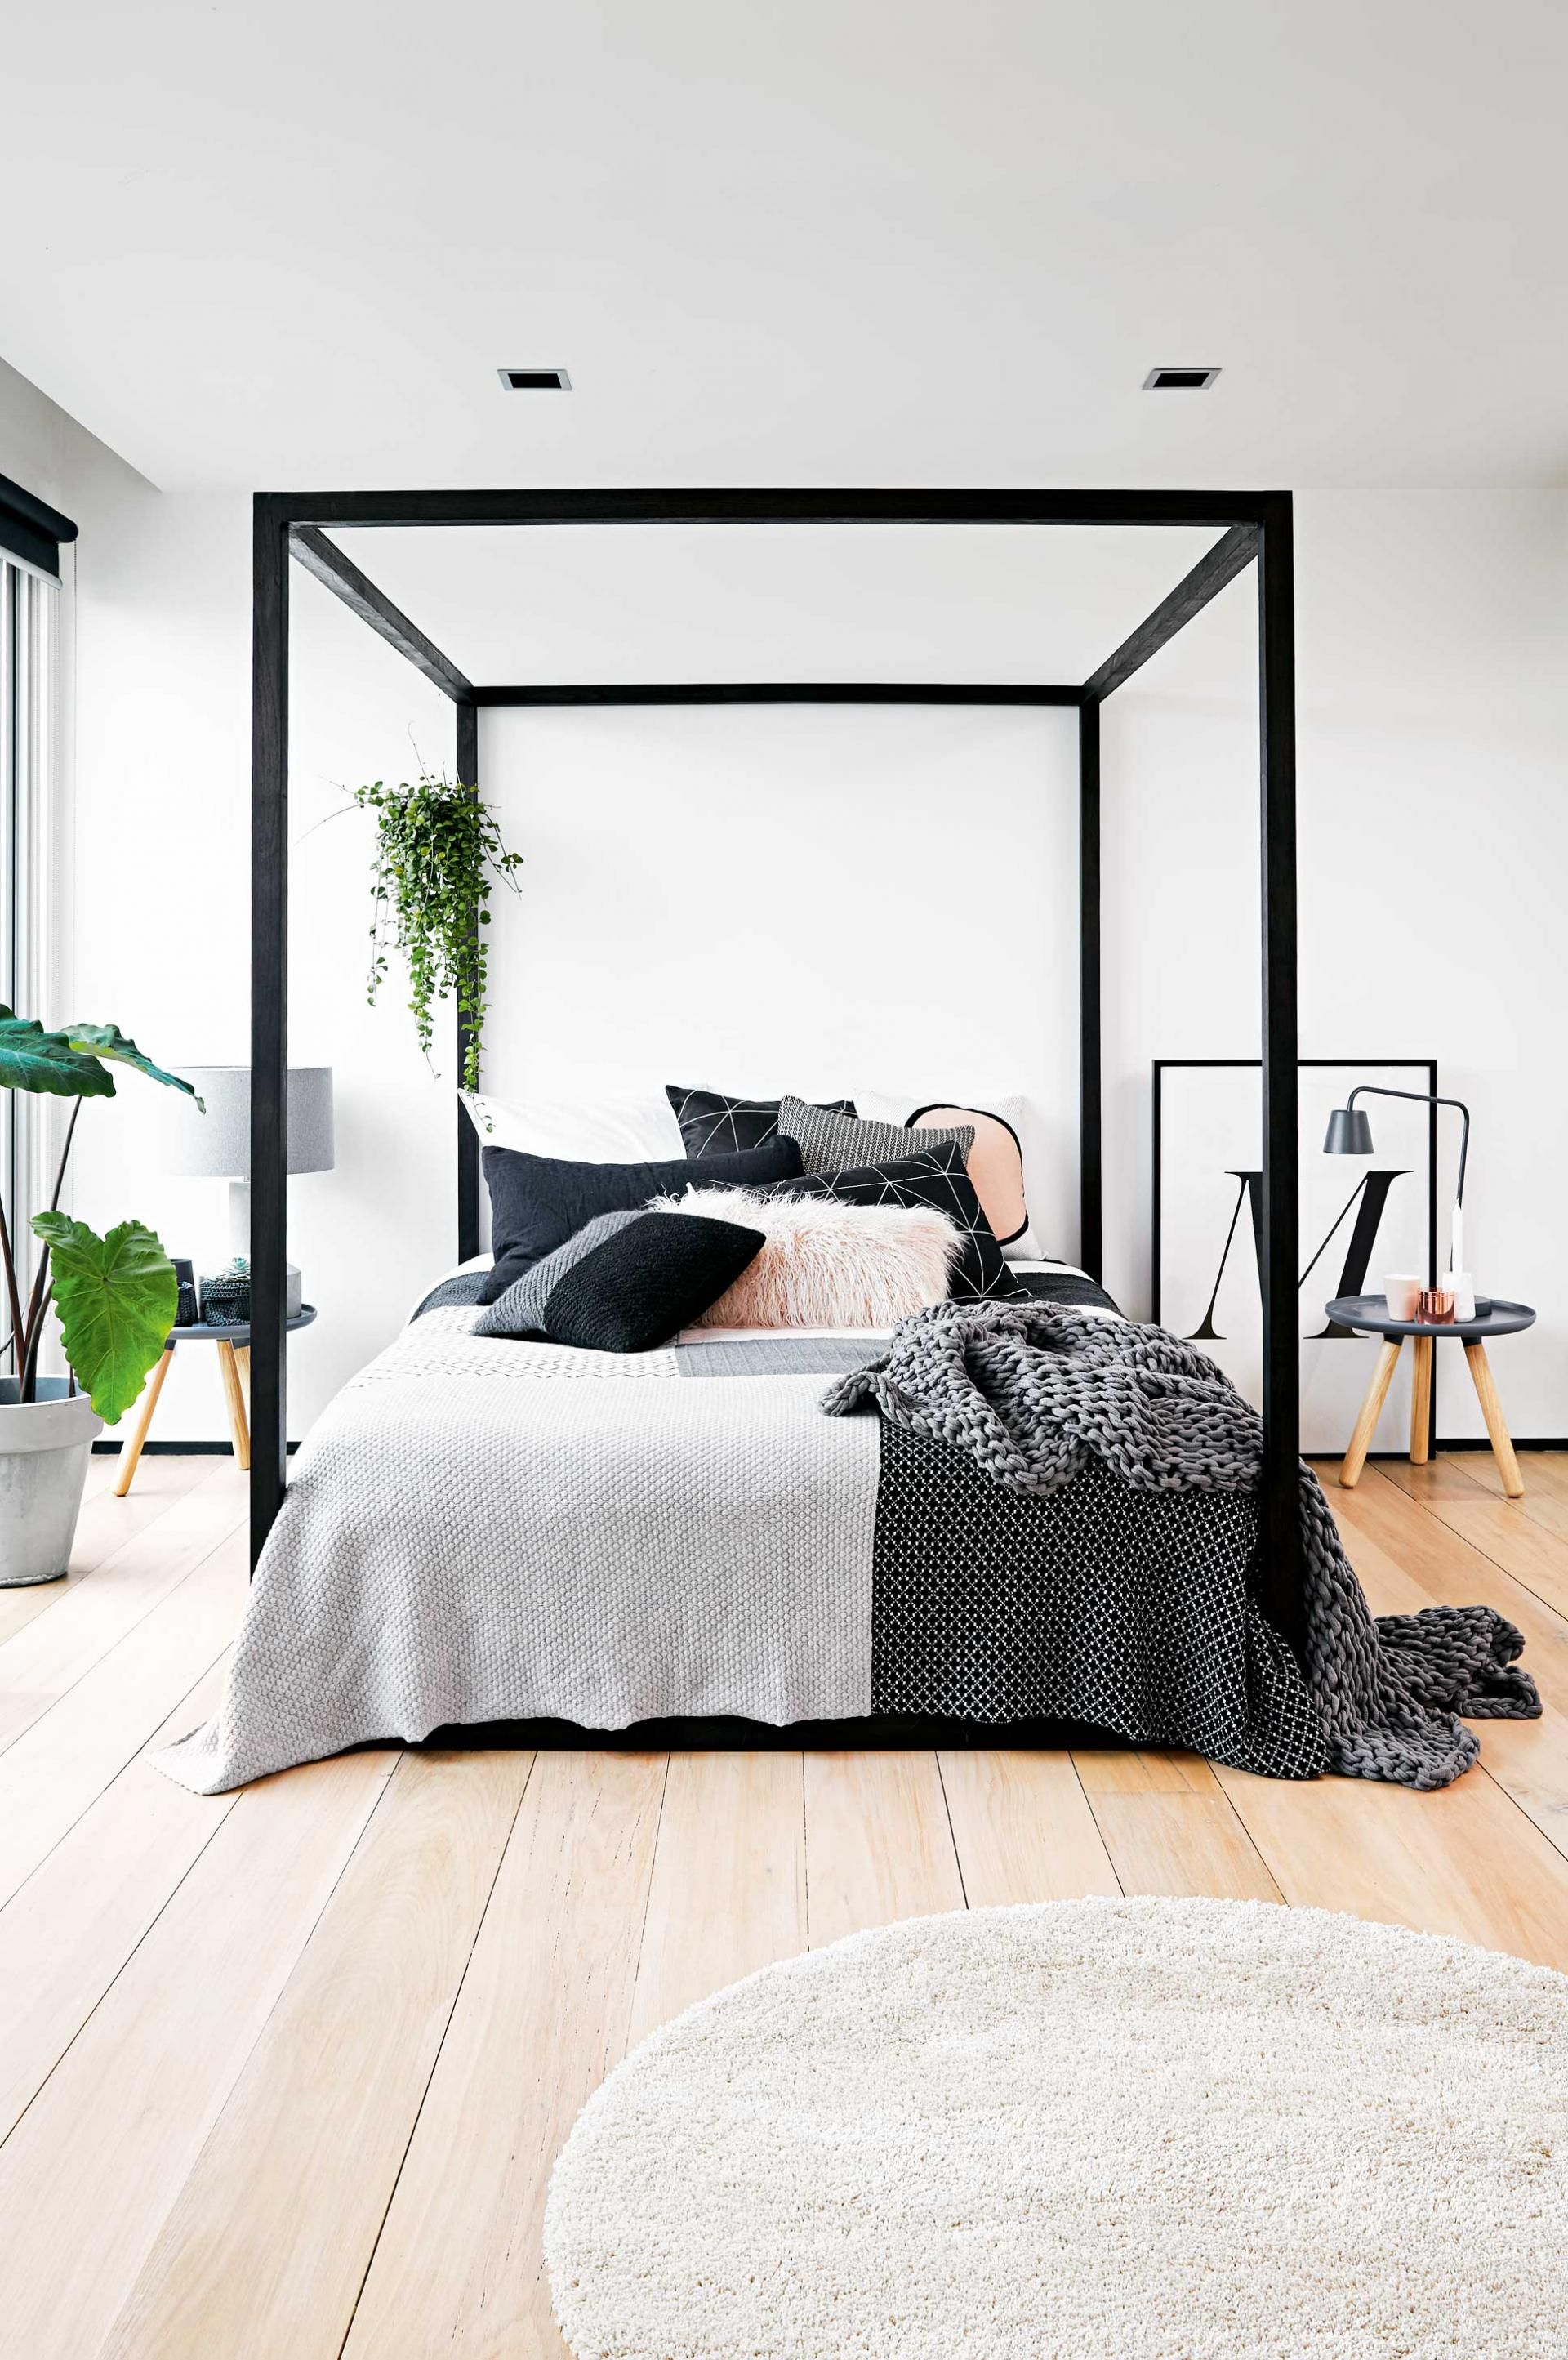 Black bedroom ideas inspiration for master bedroom designs google play september and app Master bedroom with red bedding